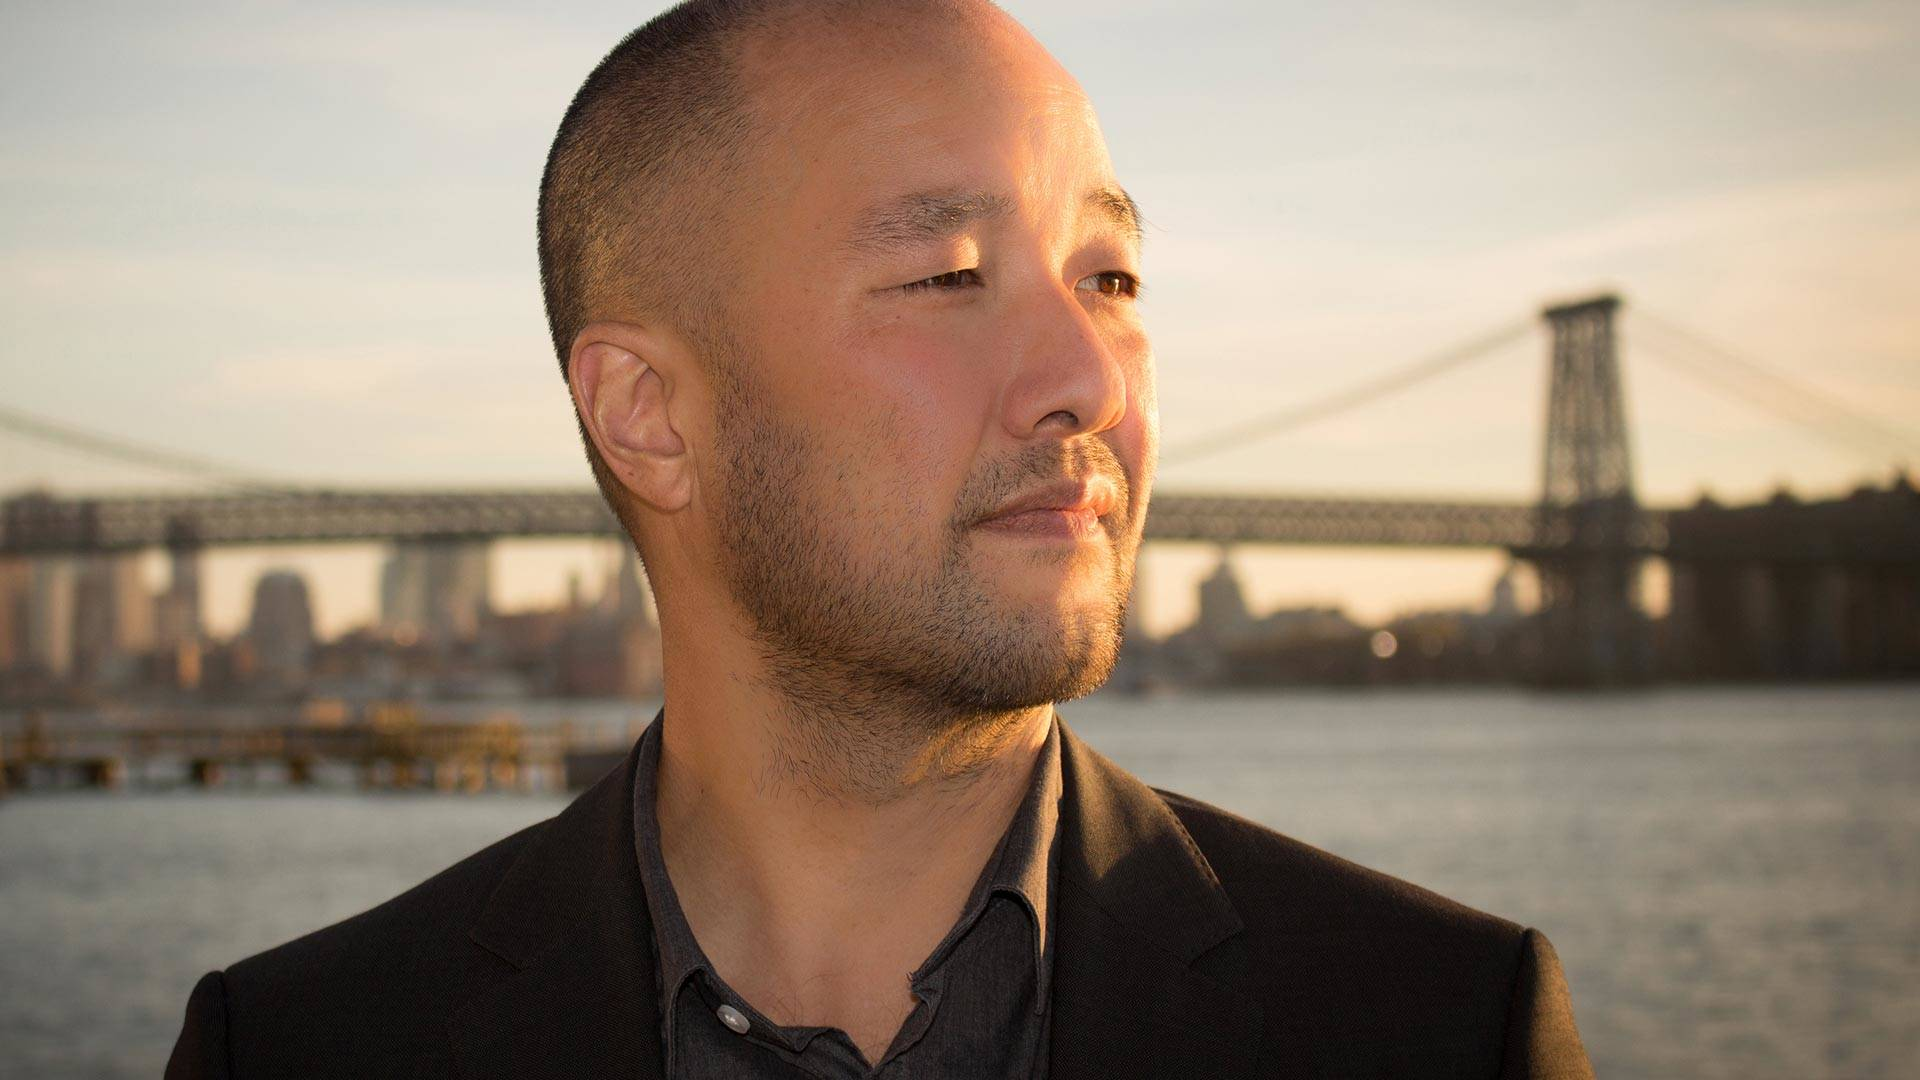 Jazz pianist Art Hirahara returns this weekend to his native San Jose to show off what he's learned from life in New York. Sara Pettinalla